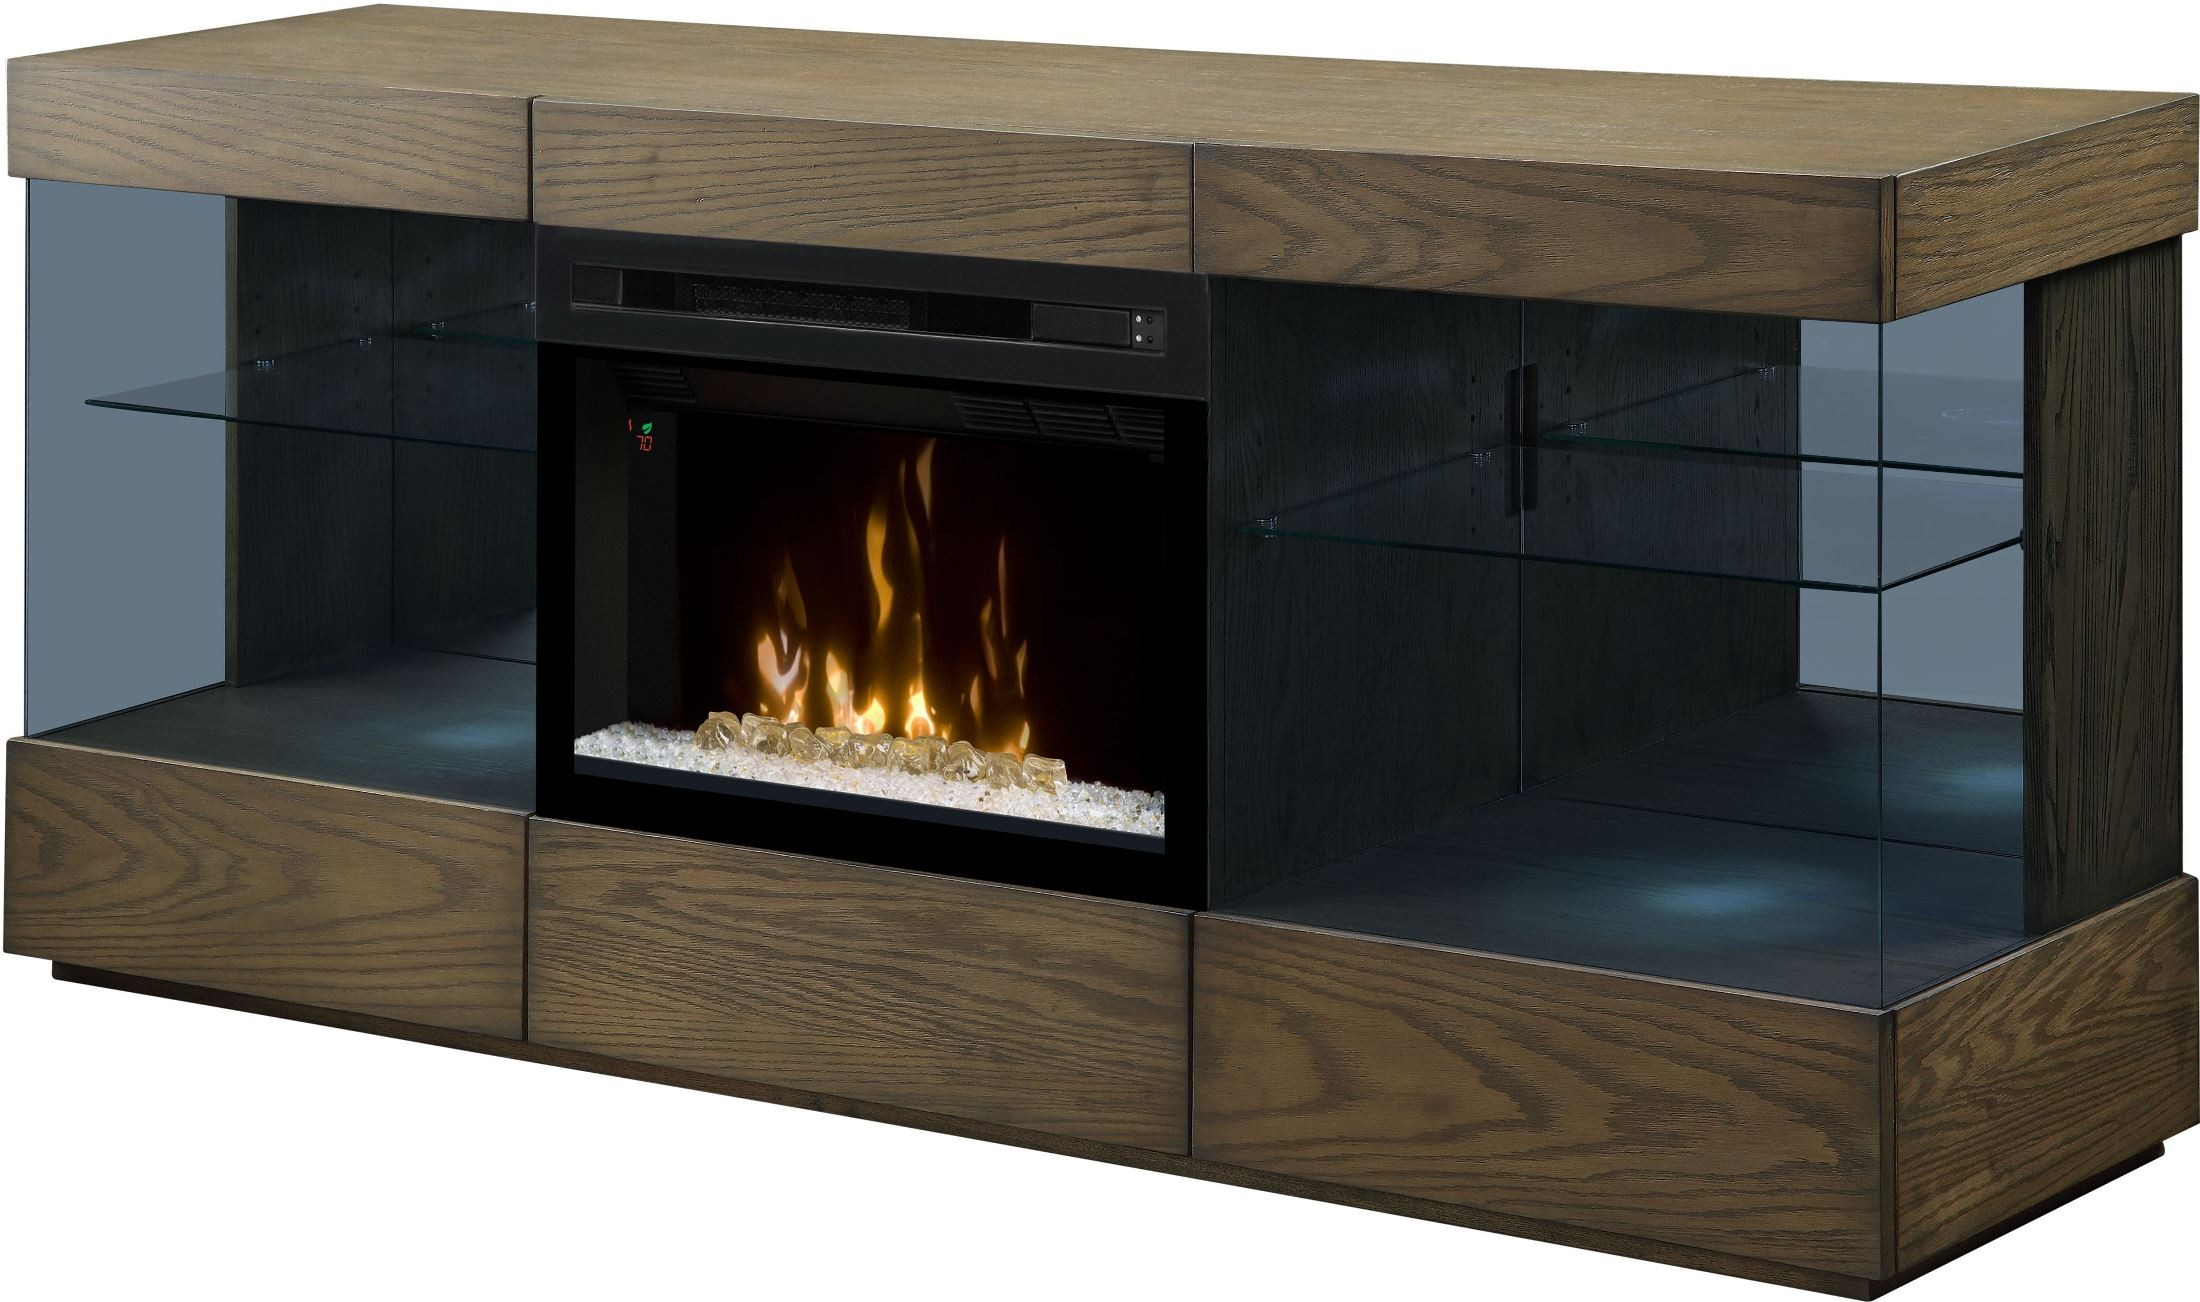 Axel raked sand media console electric fireplace with - Going to bed with embers in fireplace ...